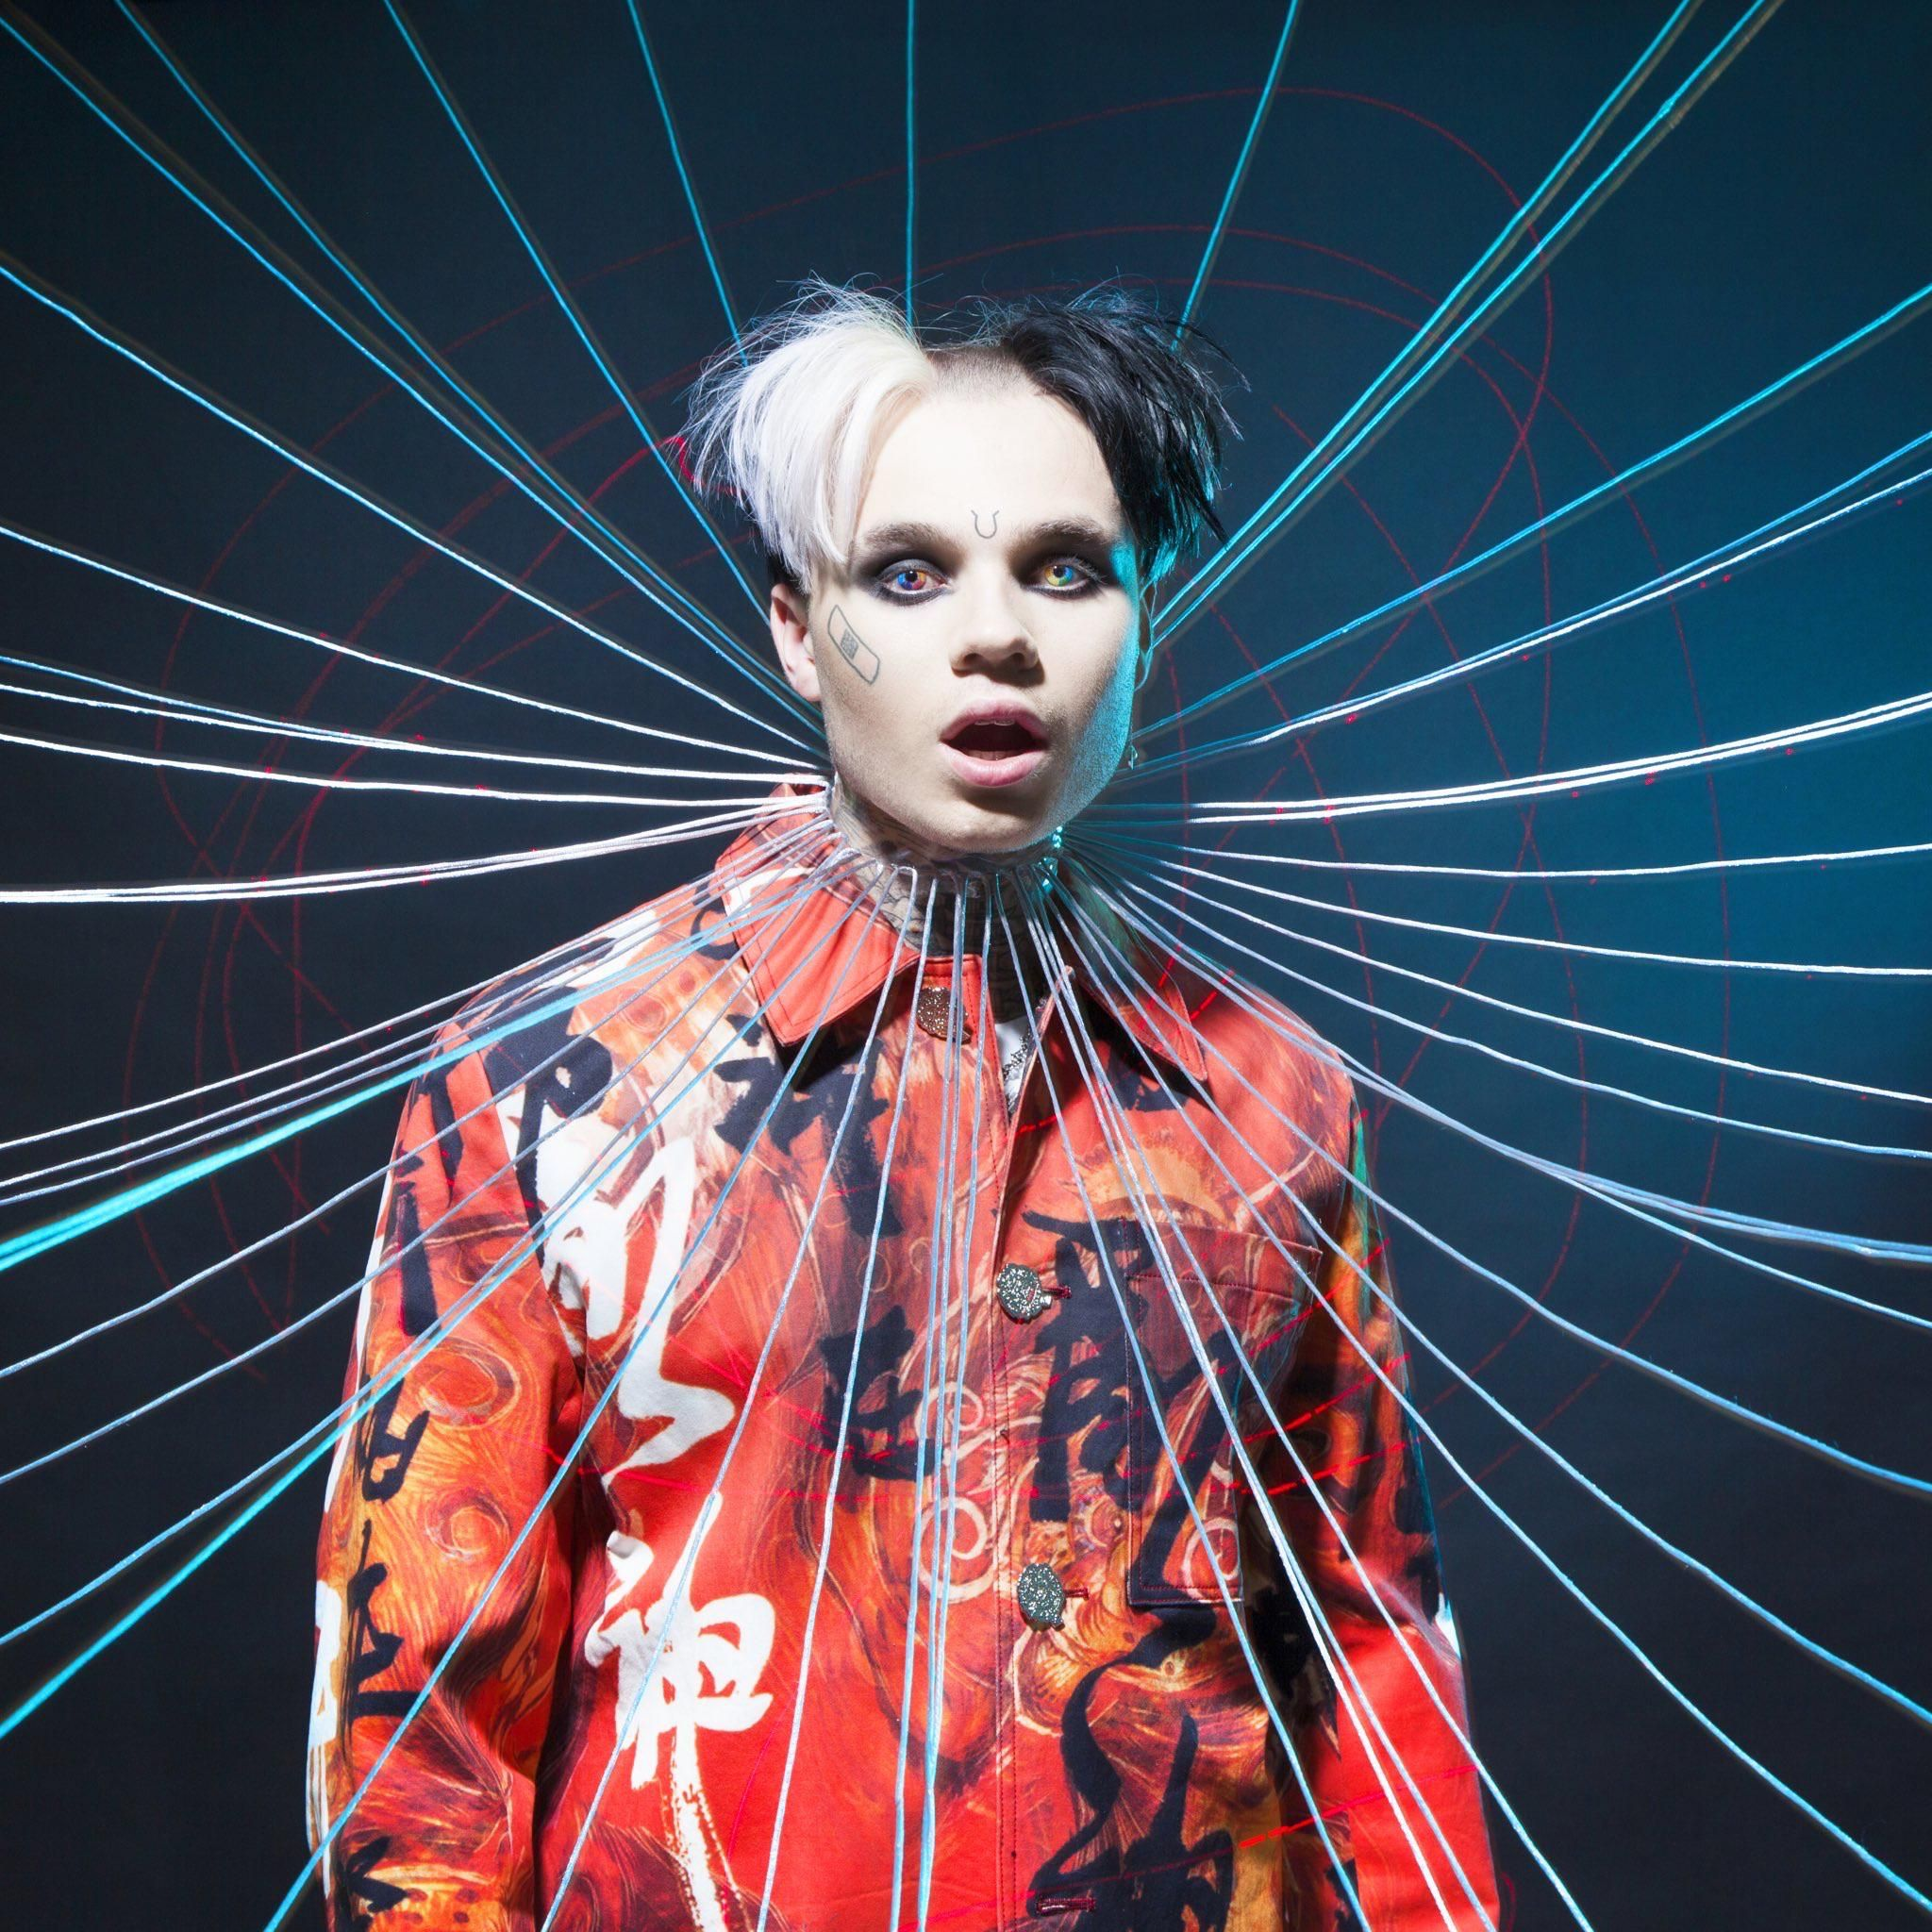 Pin by Catherine Paredes on Bexey! in 2020 Rappers